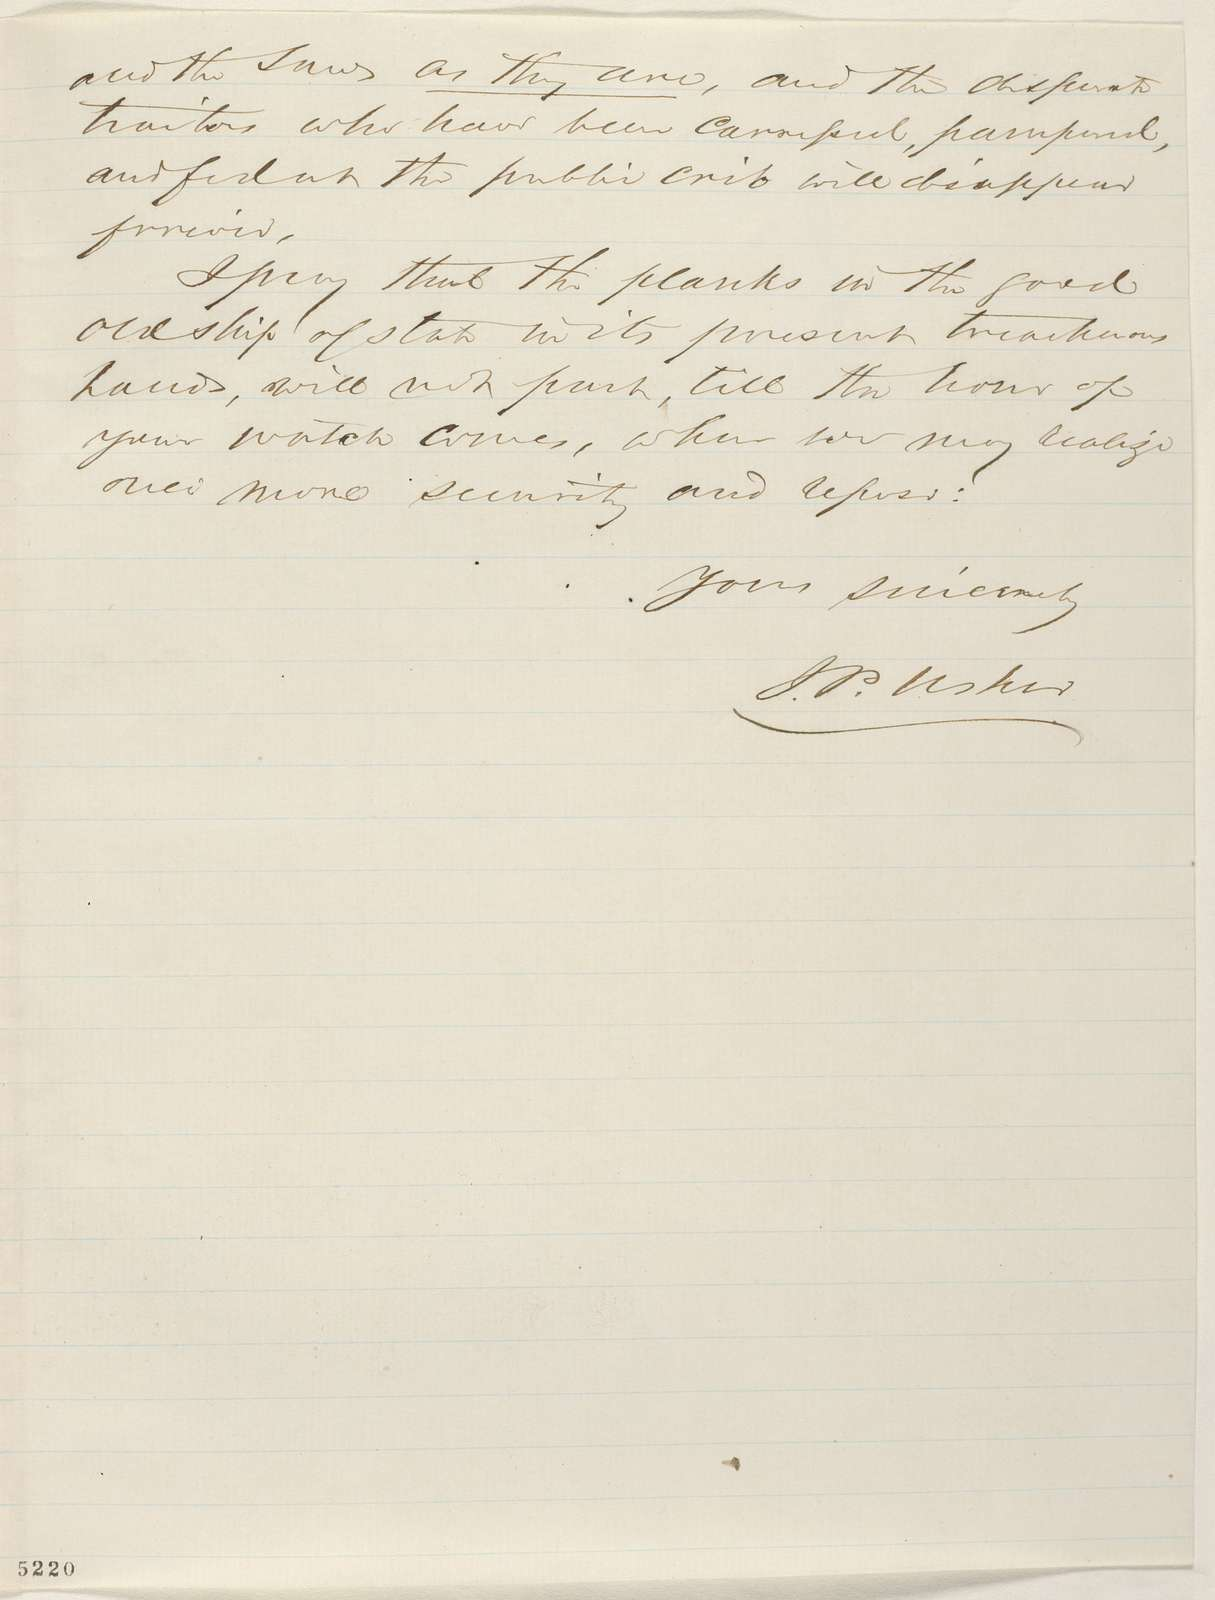 Abraham Lincoln papers: Series 1. General Correspondence. 1833-1916: John P. Usher to Abraham Lincoln, Wednesday, December 19, 1860 (Recommends Caleb Smith)